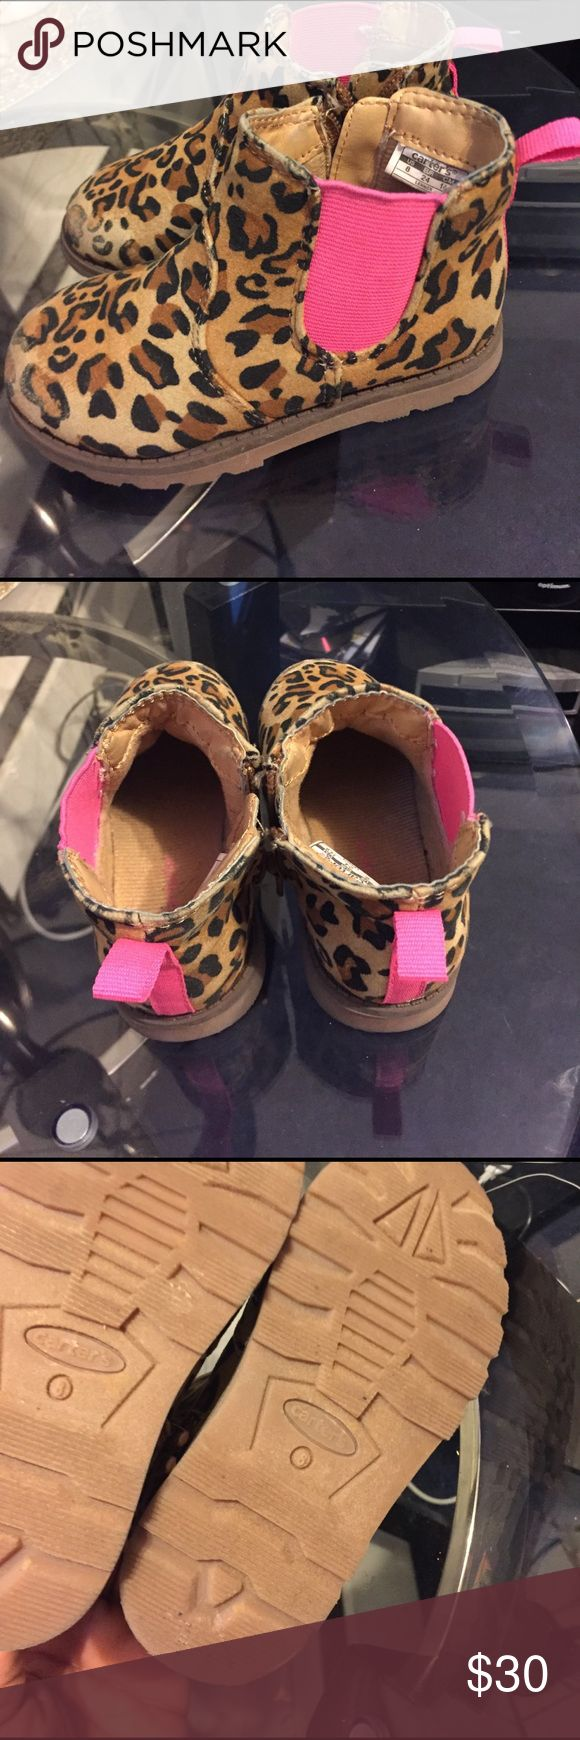 Boots for sale Girls boots brand carters size 8 for sale Carter's Shoes Boots